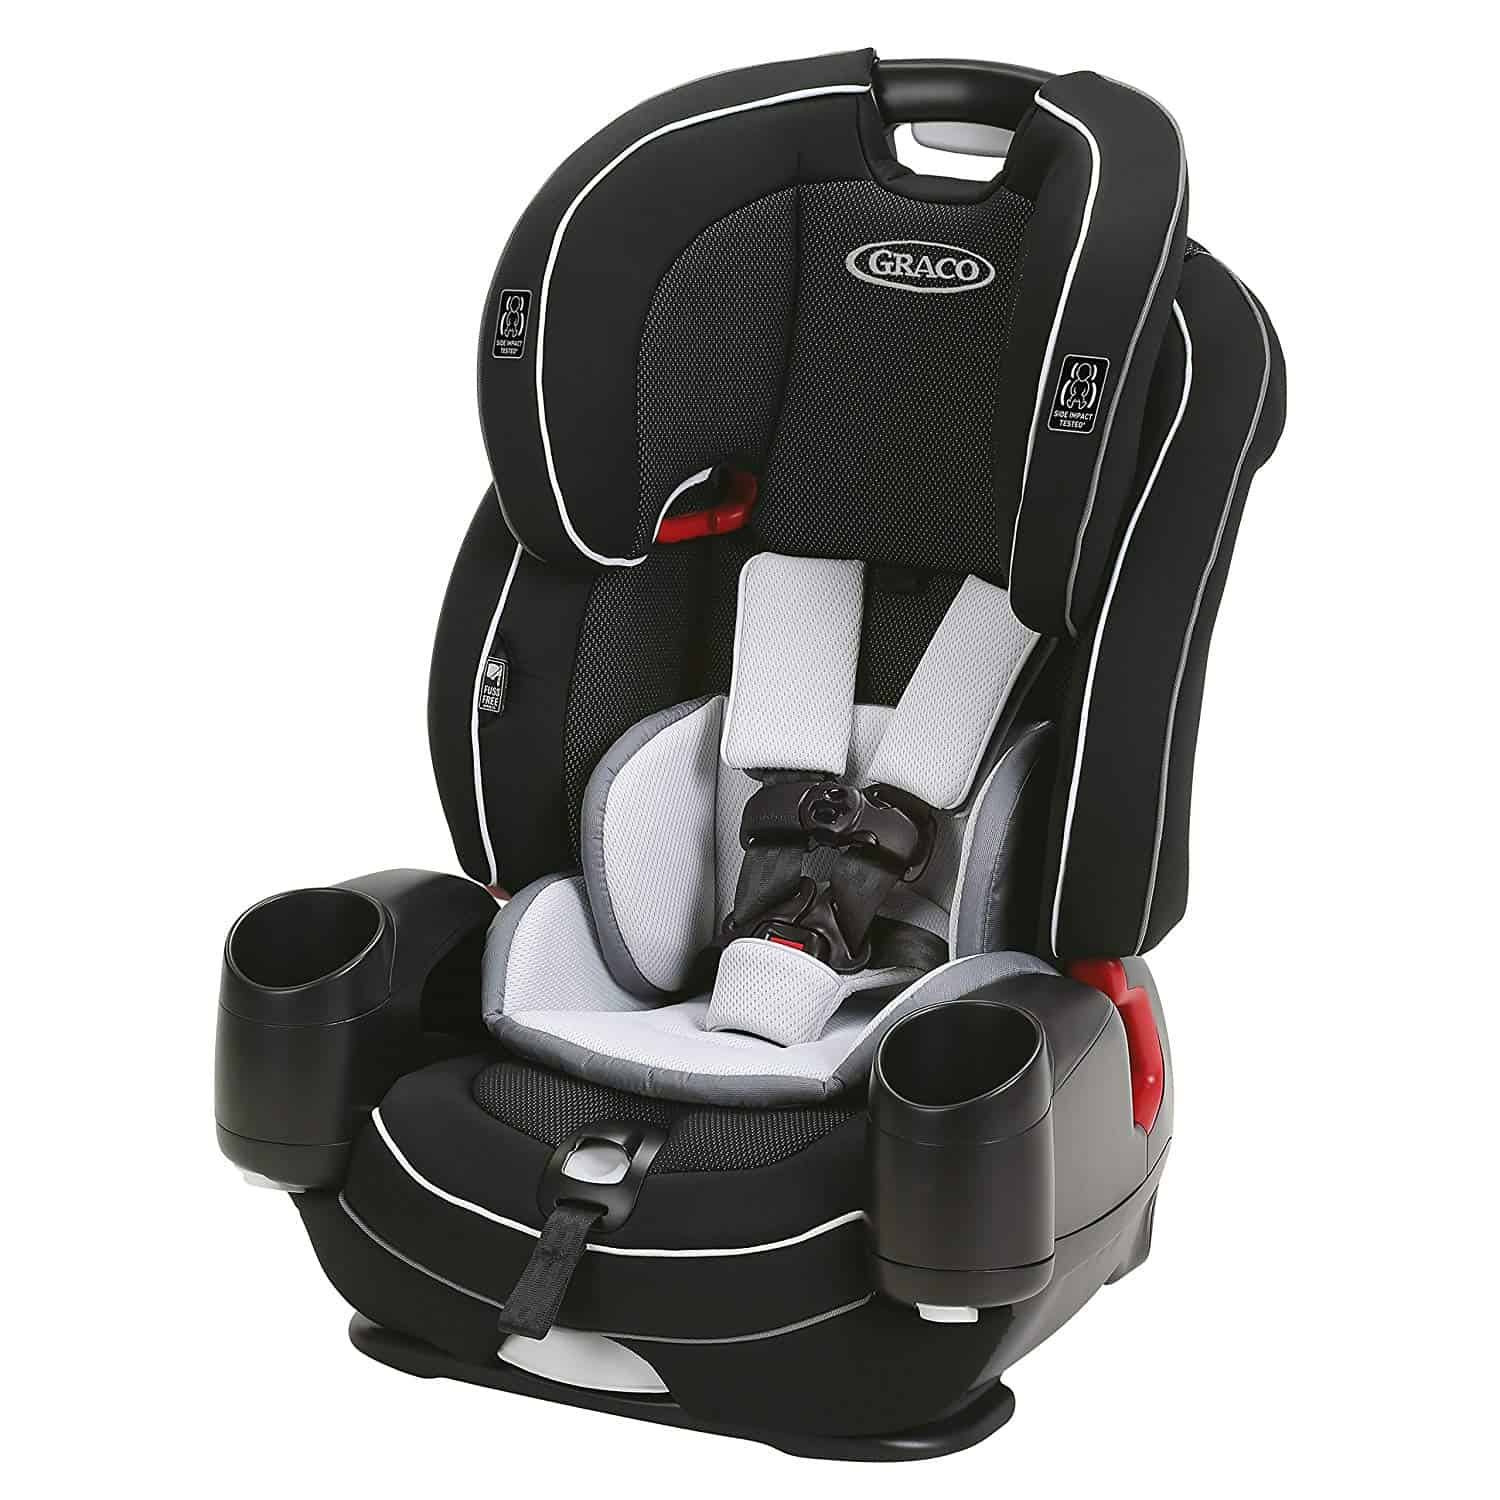 Best Booster Car Seat Graco® Nautilus SnugLock 3-in-1 Harness Booster